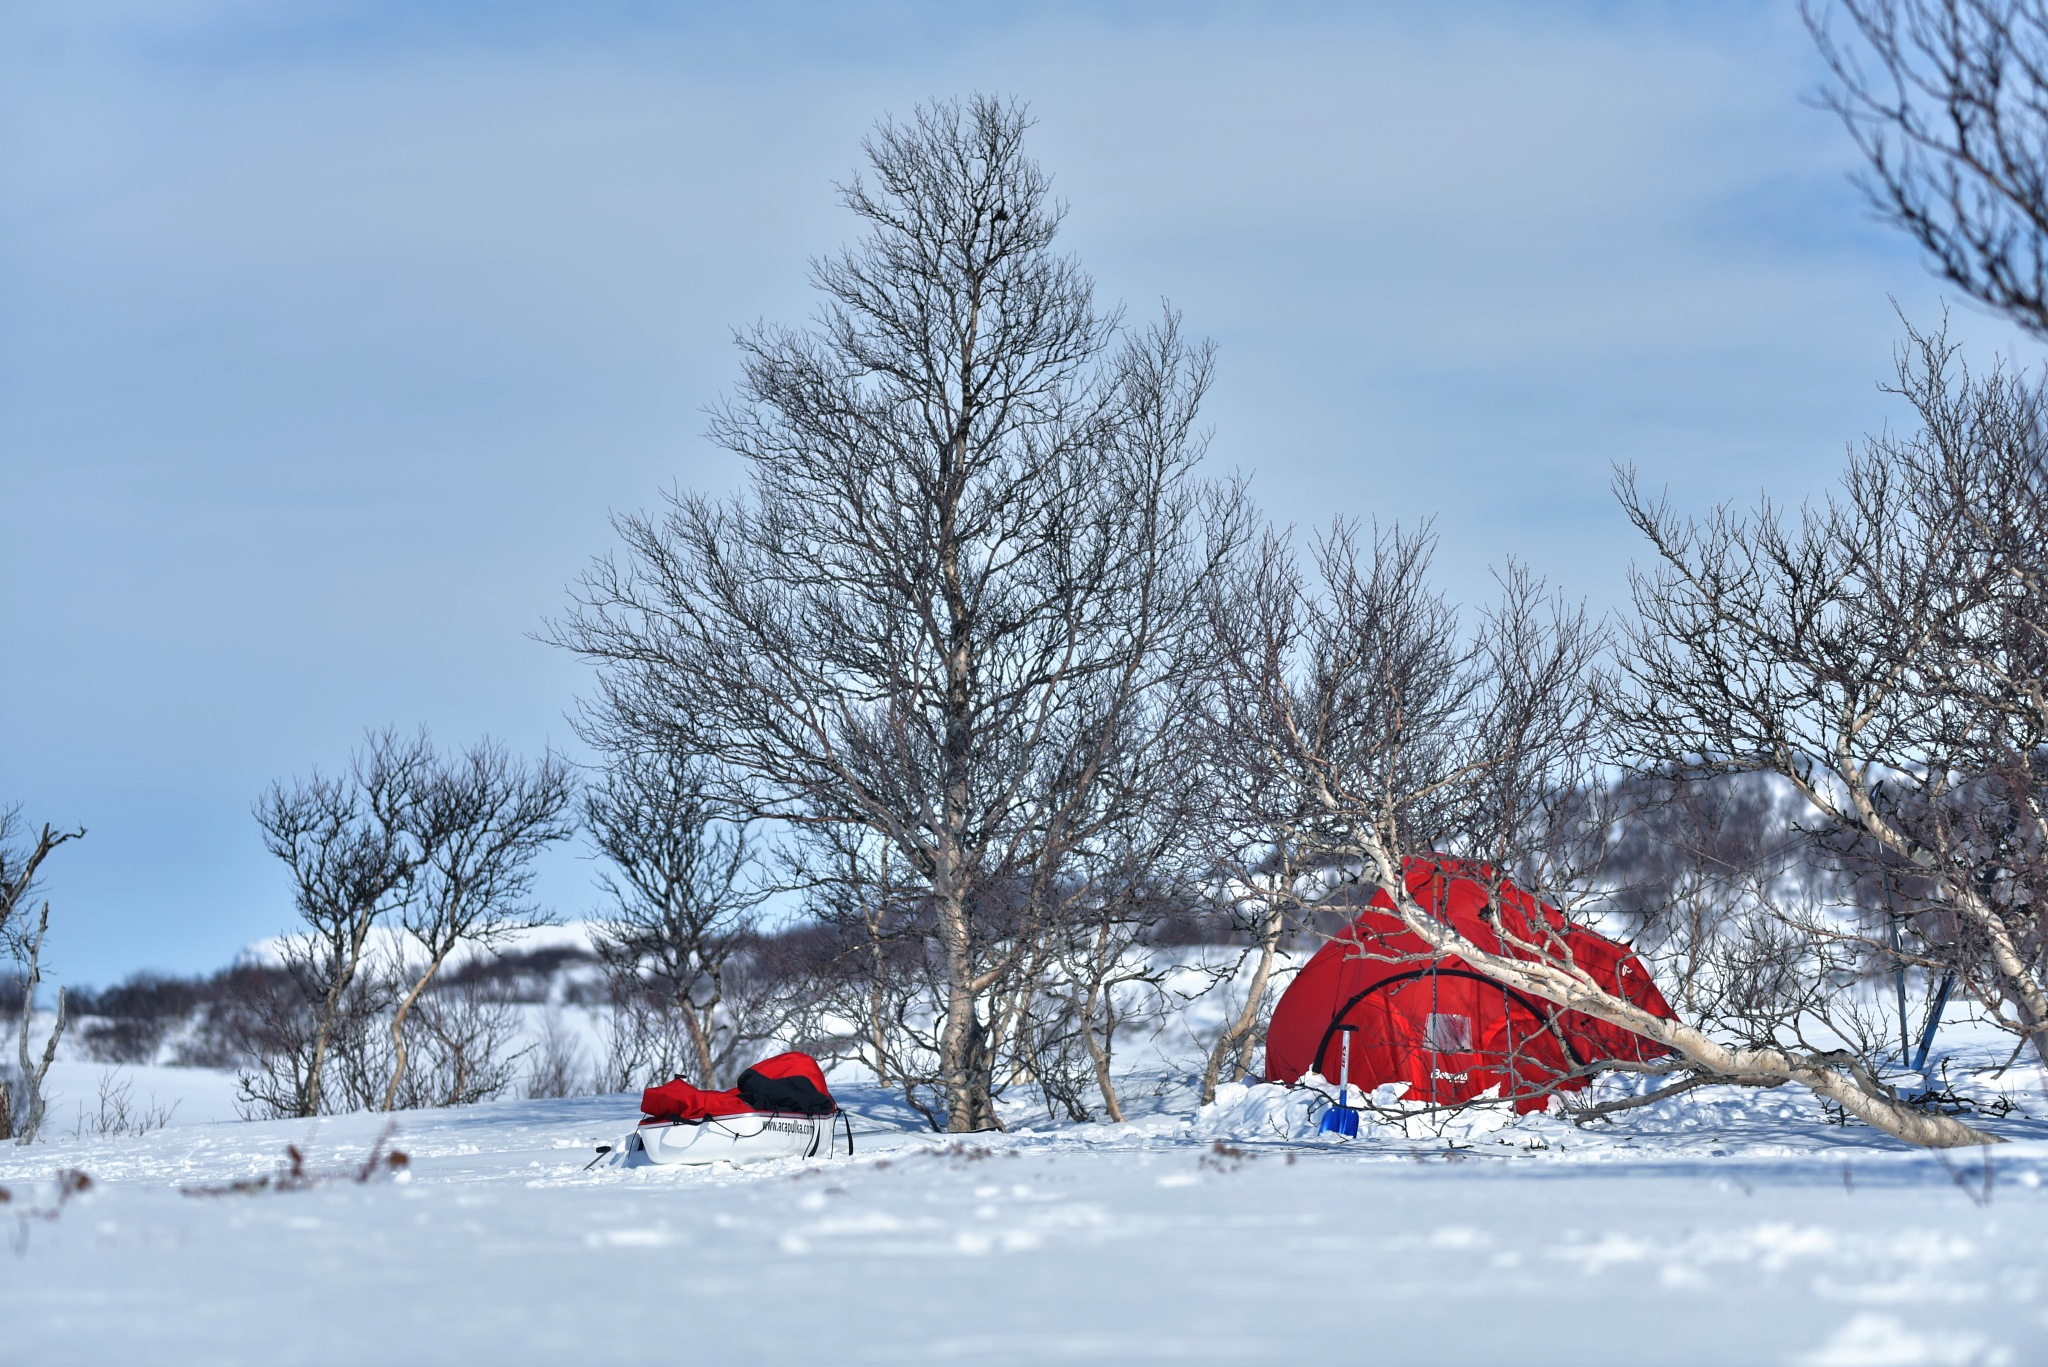 Protected camp site - threes breaking the wind by E Pedersen